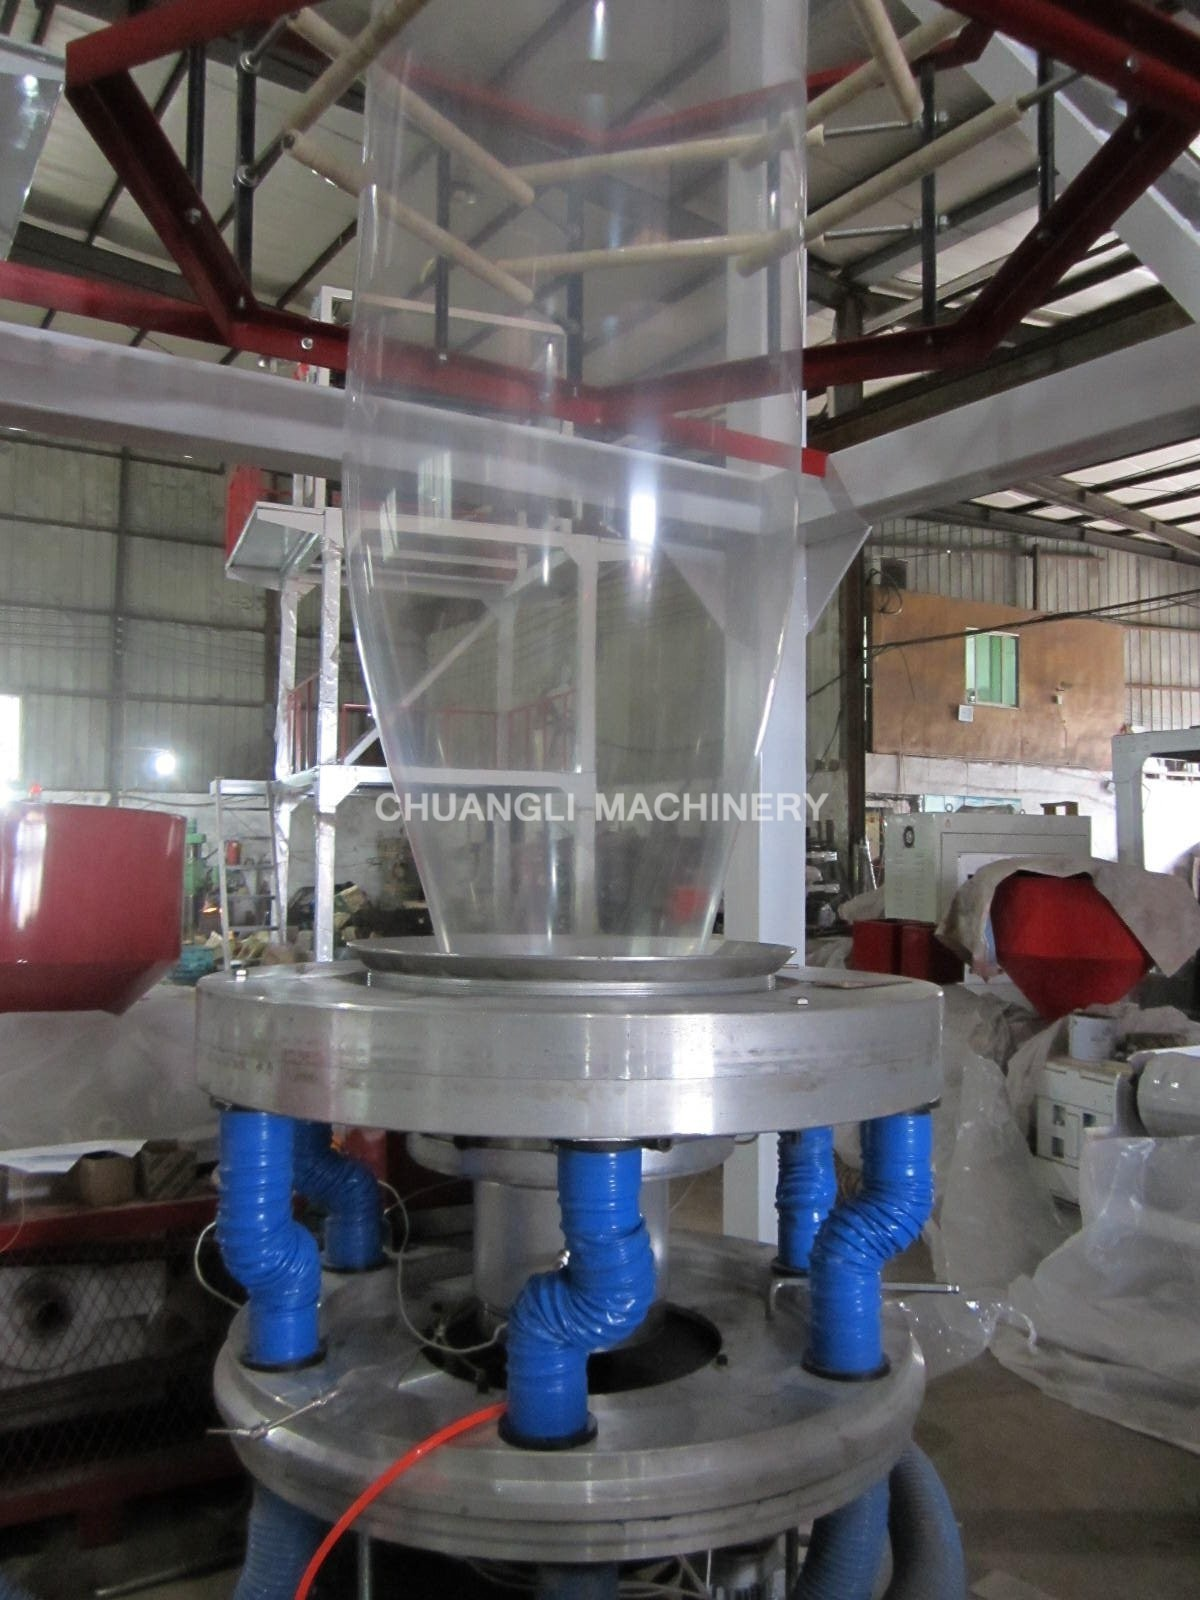 SJ-55/SJ-65/SJ-75 HDPE/LDPE Film Blowing Machine with Rotary-die Head and Double Winder